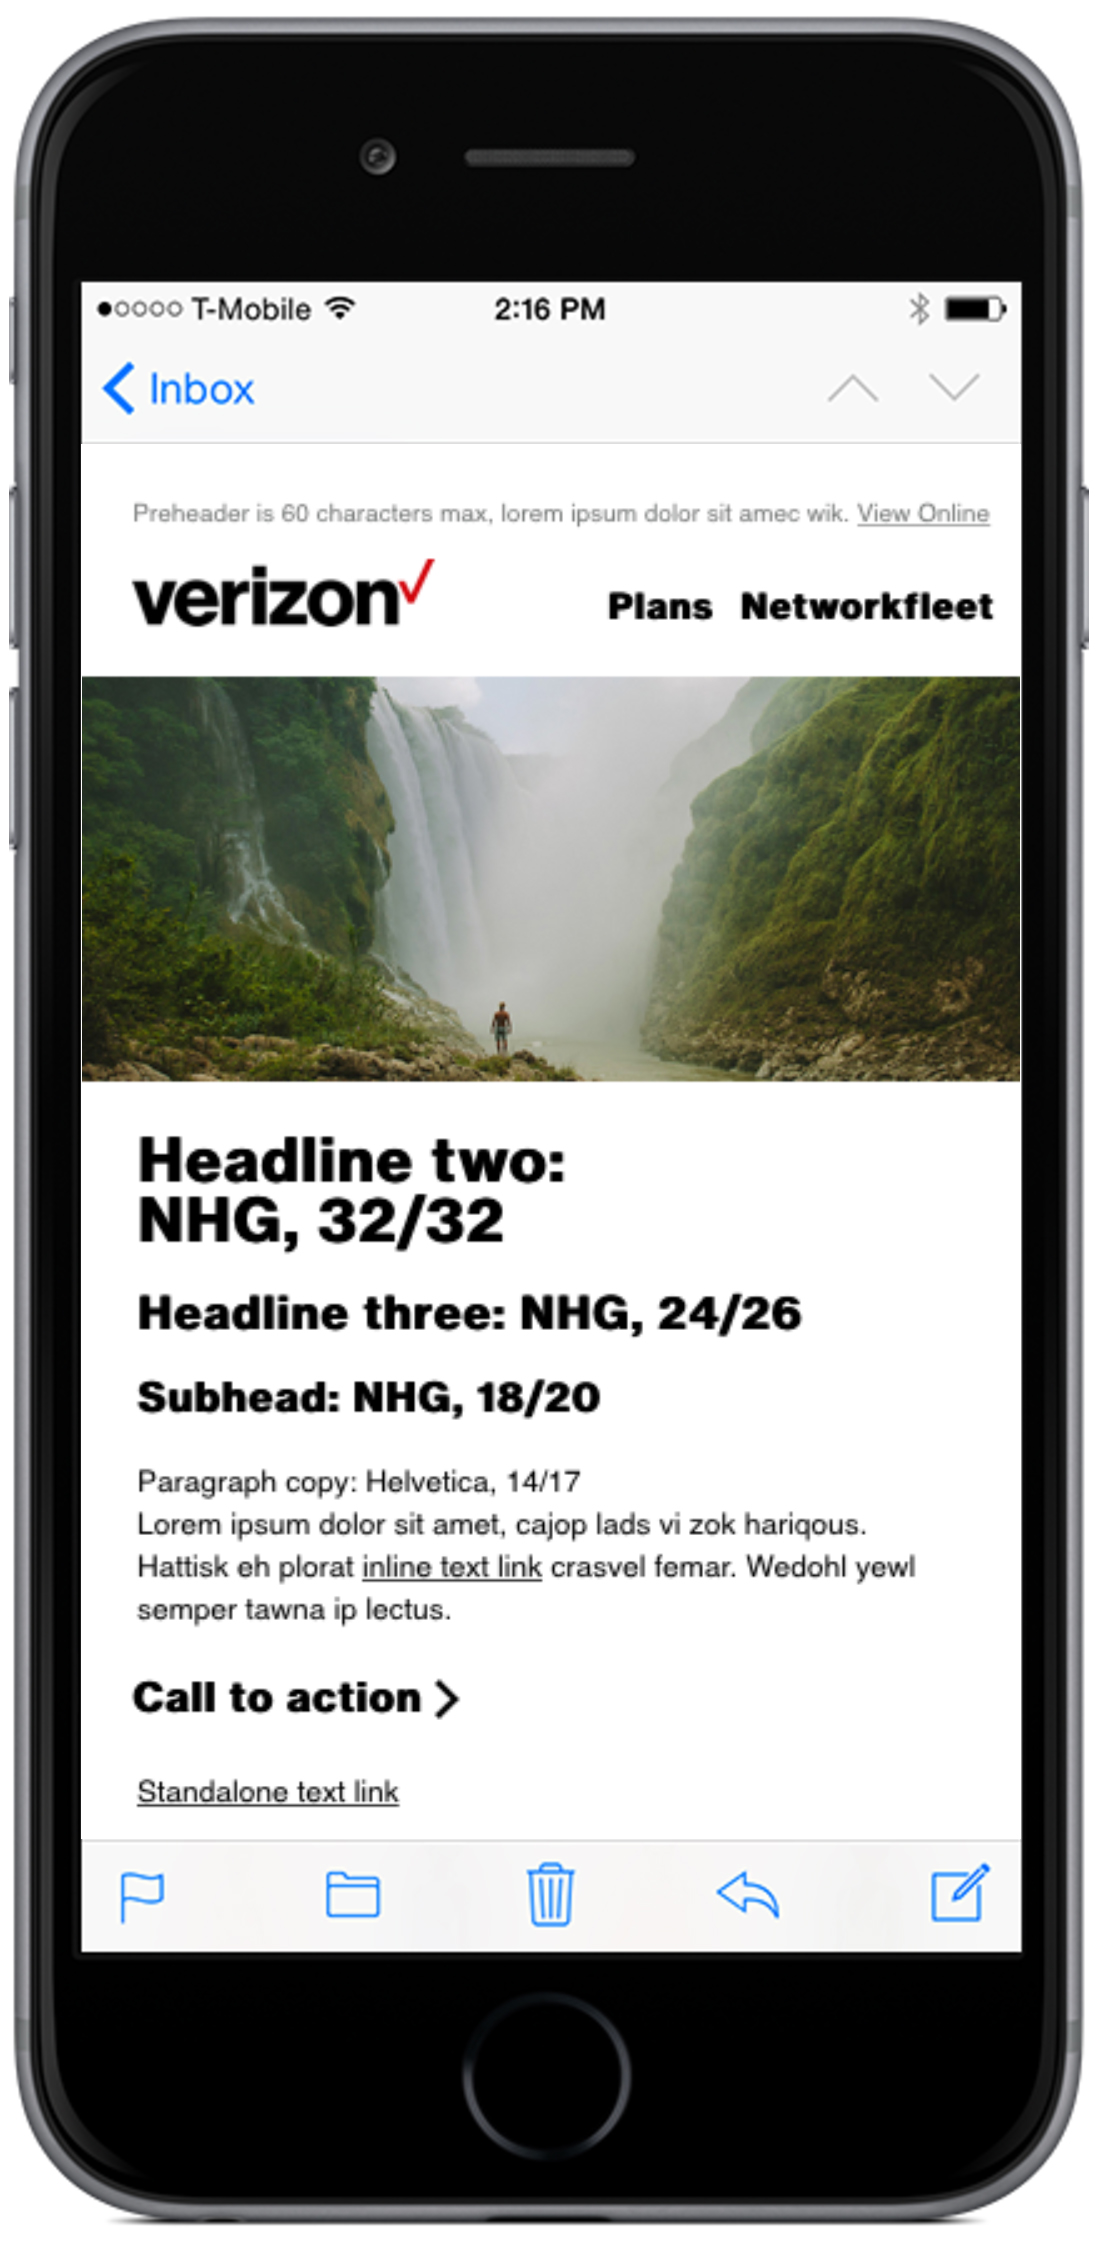 Verizon_mobile